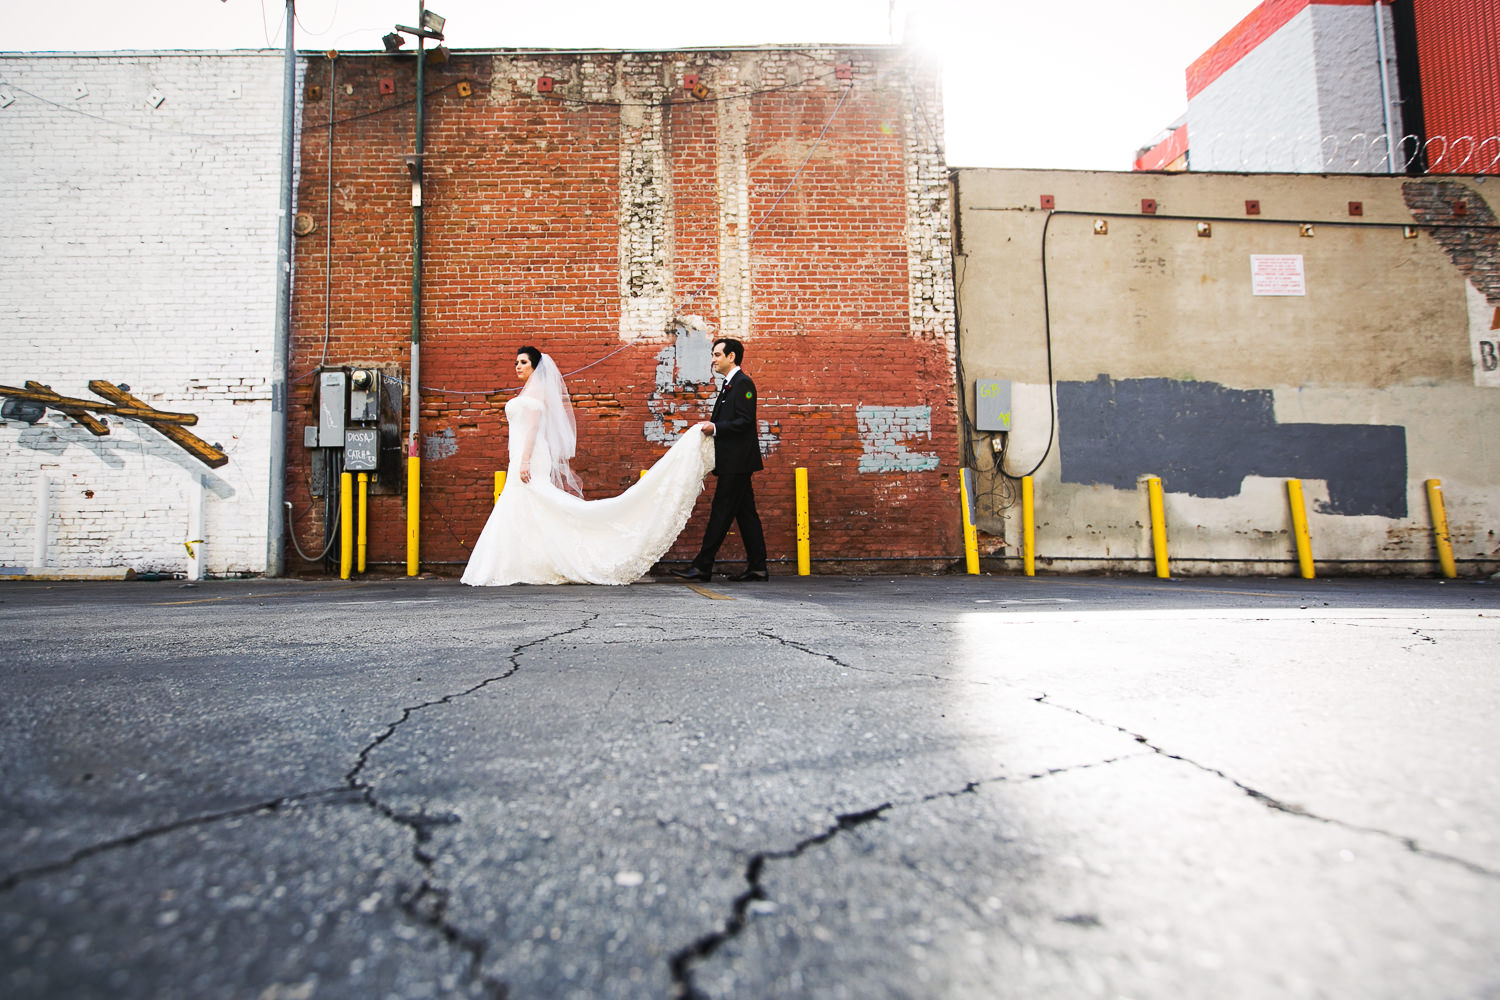 Awesome Vibiana Wedding Photographs of Bride and Groom outside the front doors